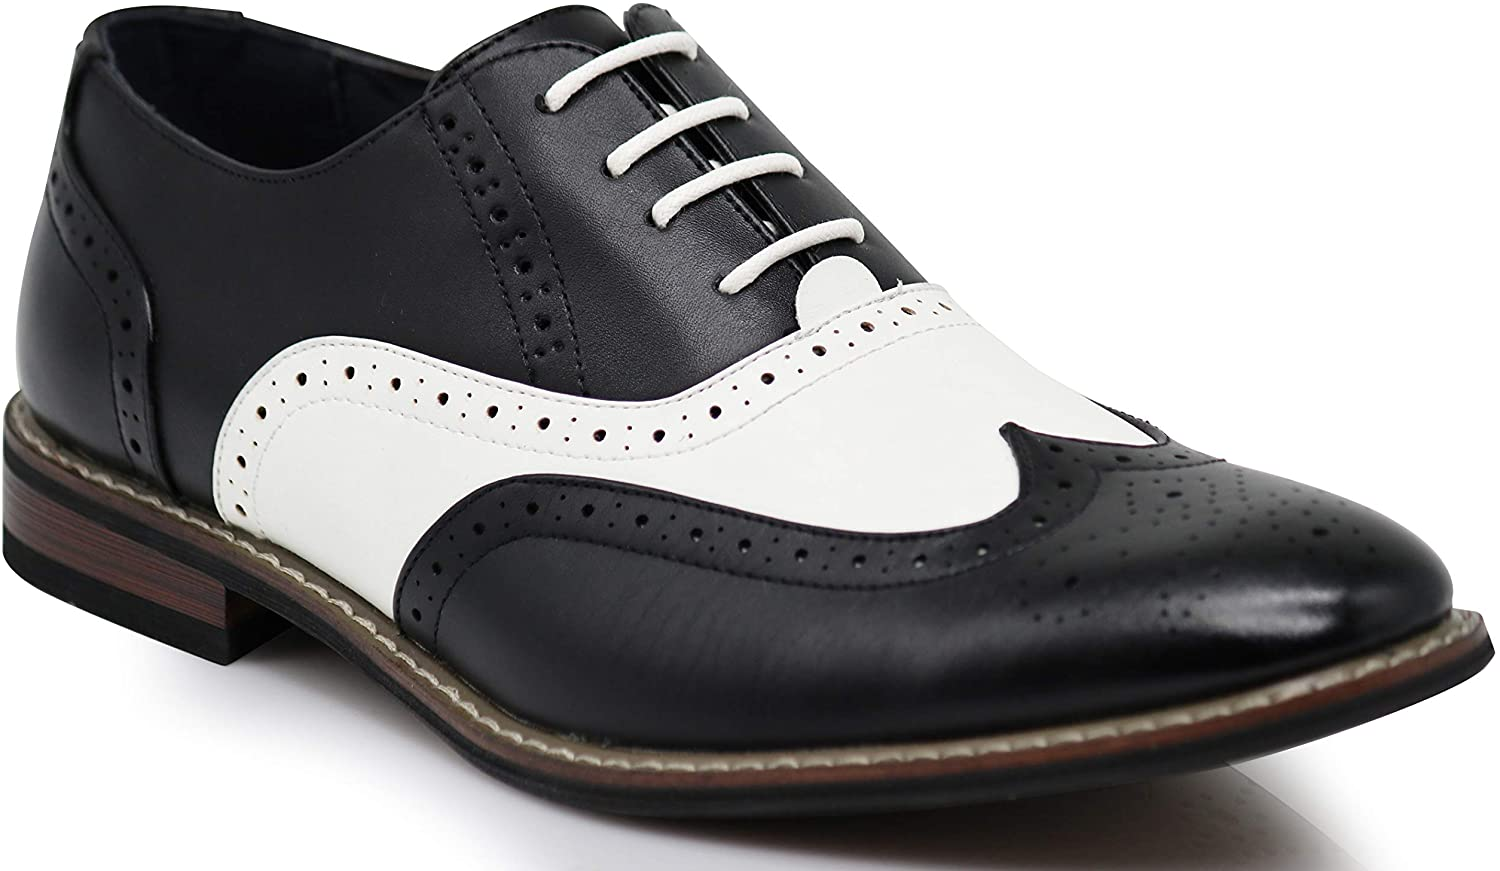 | Wooden08N Men's Two Tone Wingtips Oxfords Perforated Lace Up Dress Shoes | Oxfords